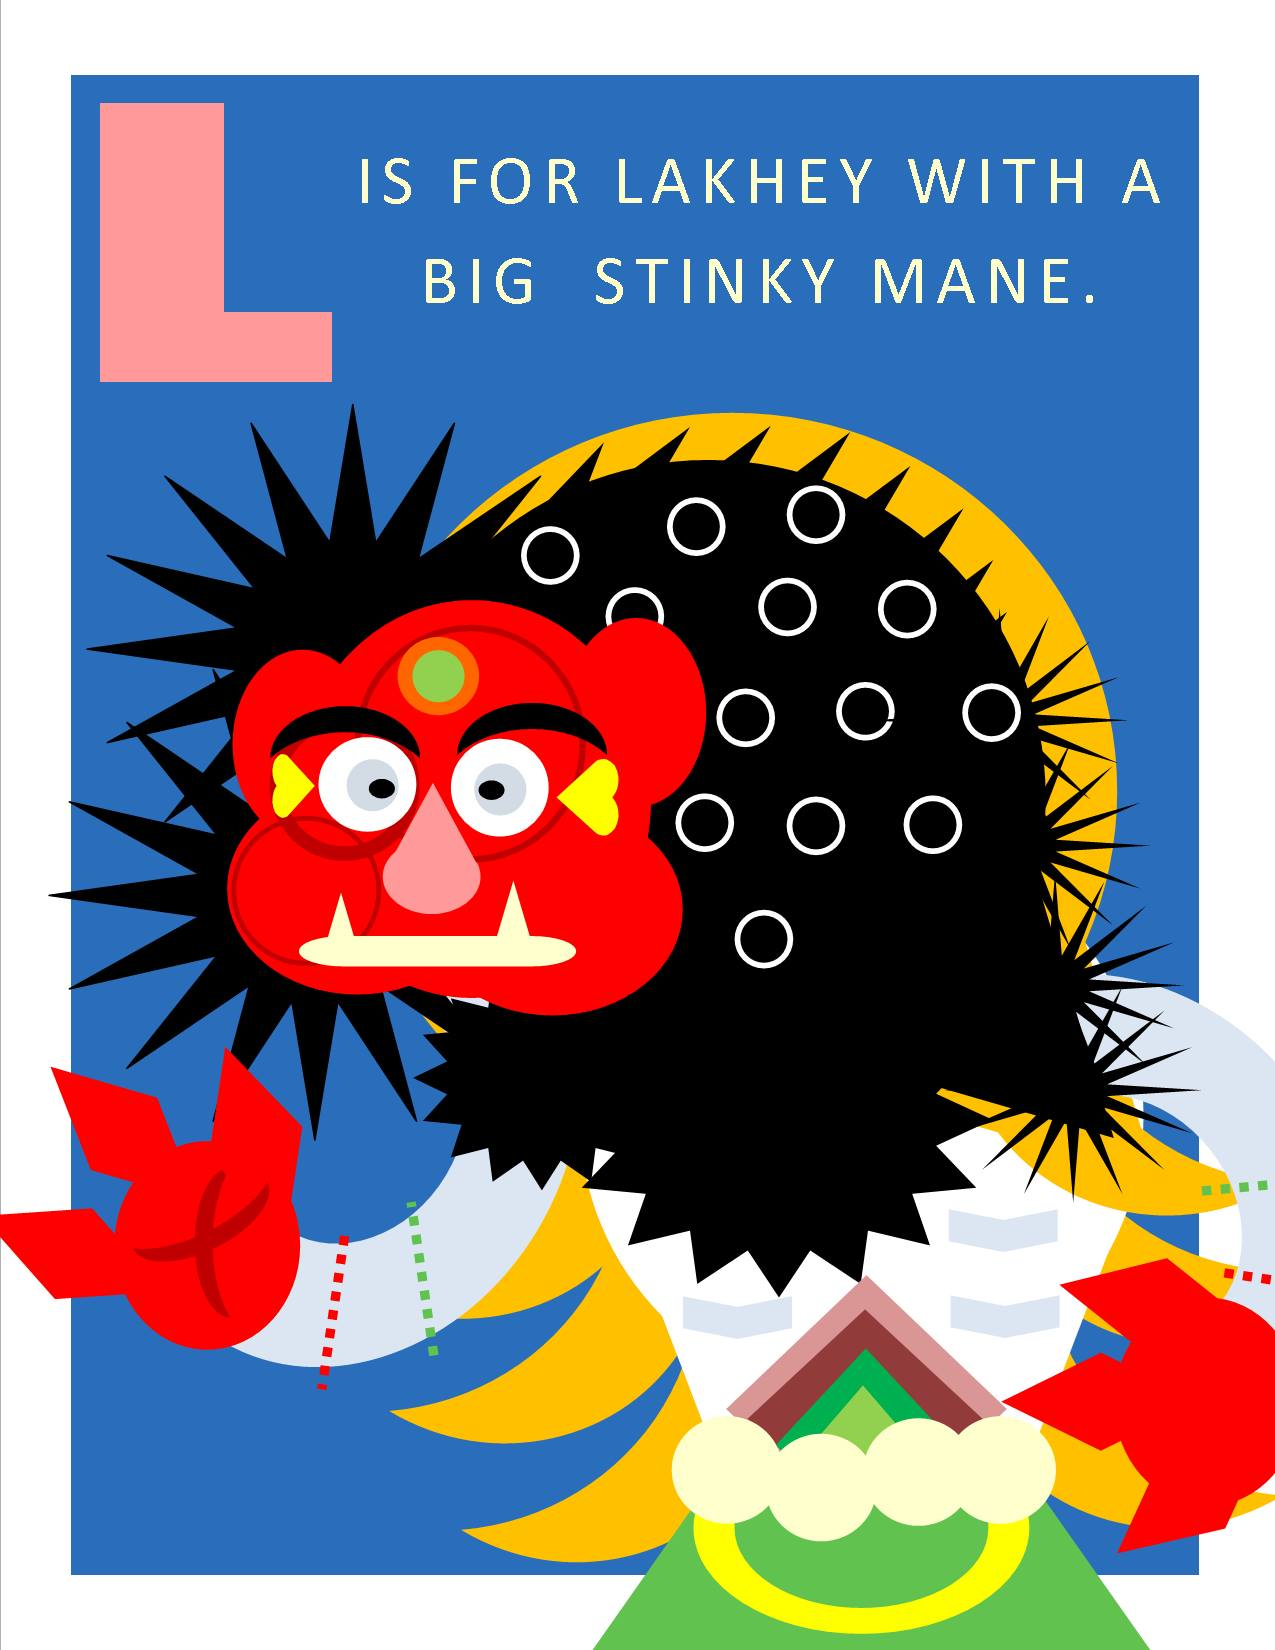 L is for Lakhey with a Big, Stinky Mane.